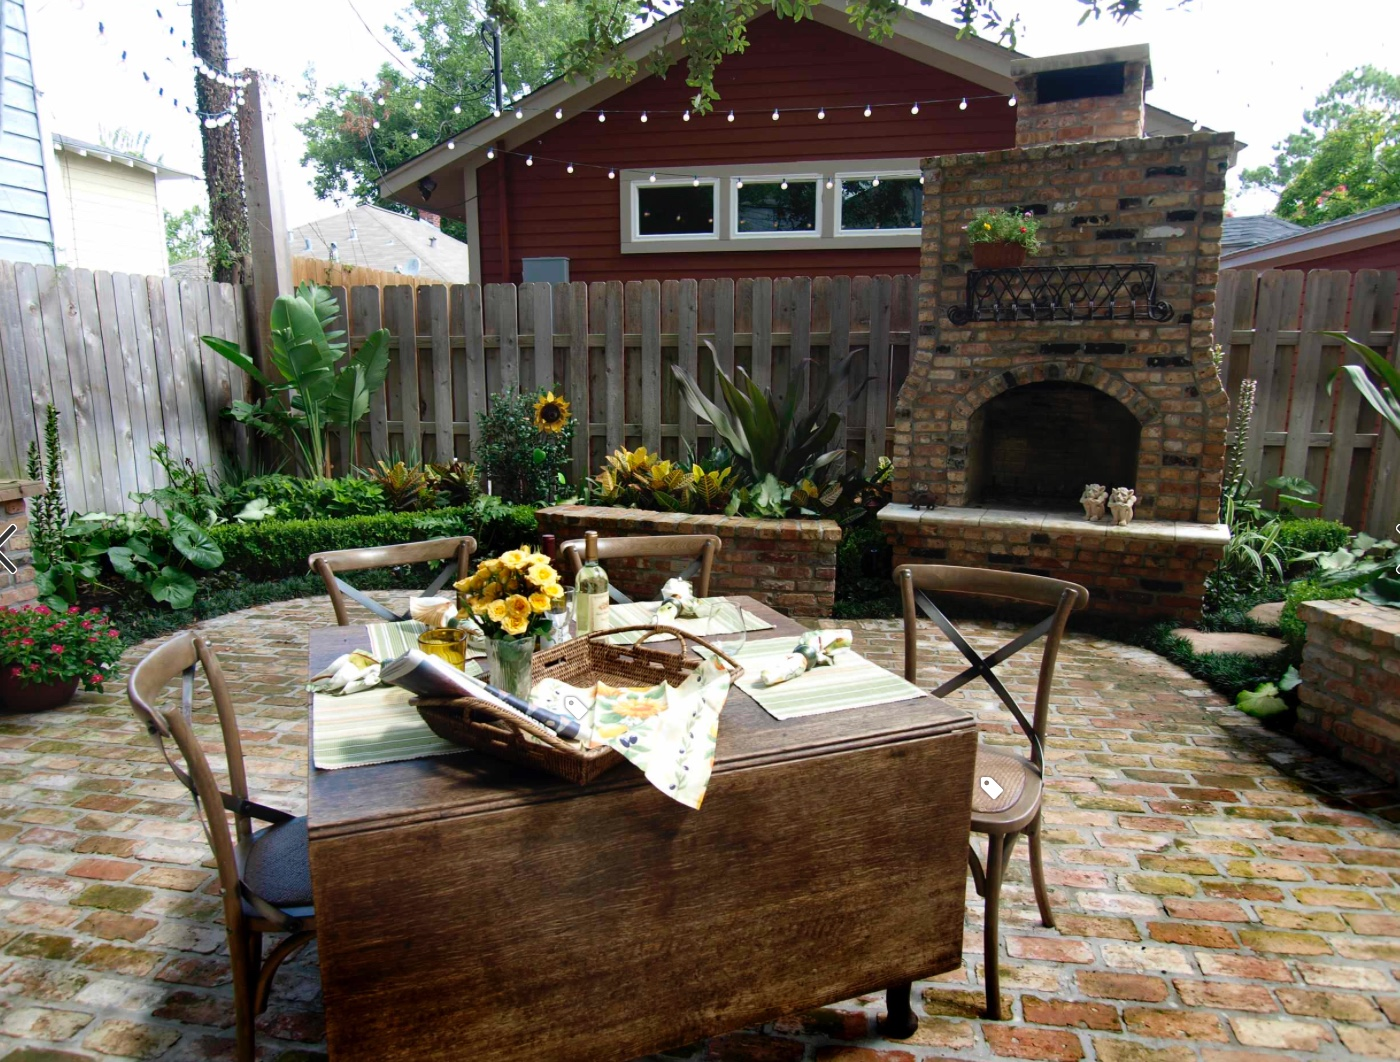 If Your House Is In Need Of Some Outdoor Space, Adding A Patio Or Deck Can  Increase Your Square Foot Without Being The Bank. Each Option Offers An  Area To ...